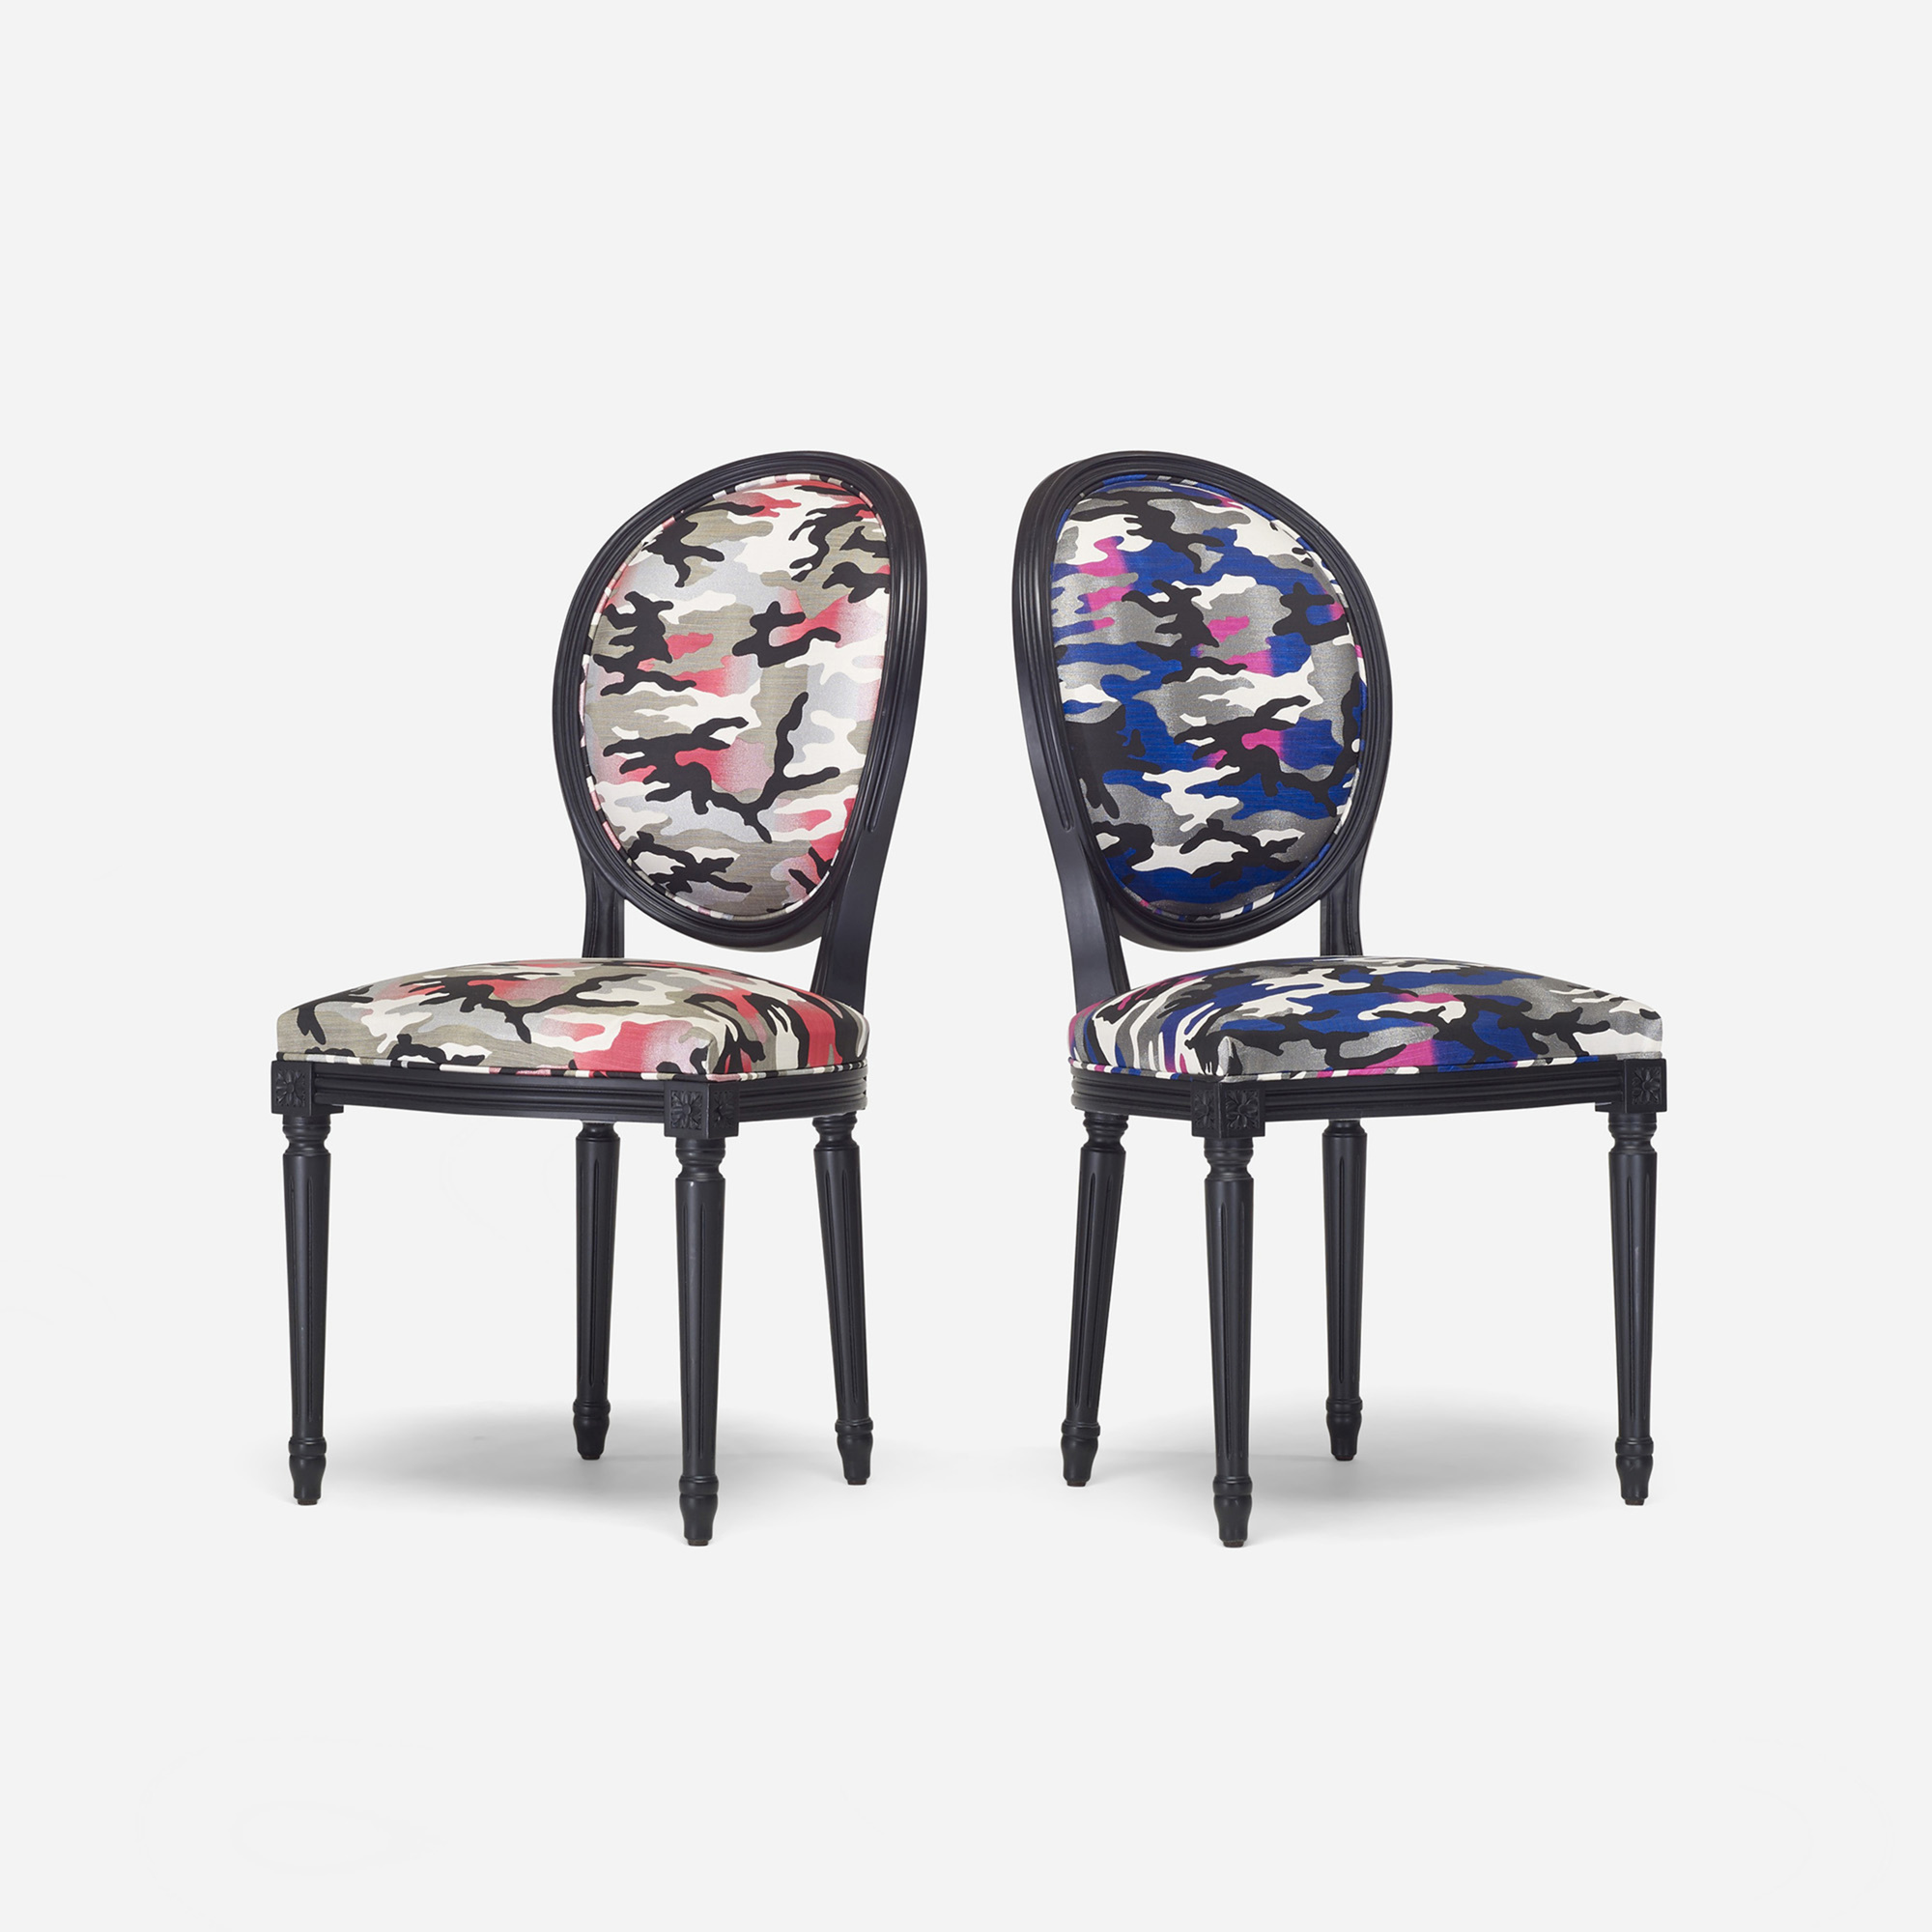 266: Anselm Reyle for Dior / custom Louis XVI chairs, pair (1 of 3)